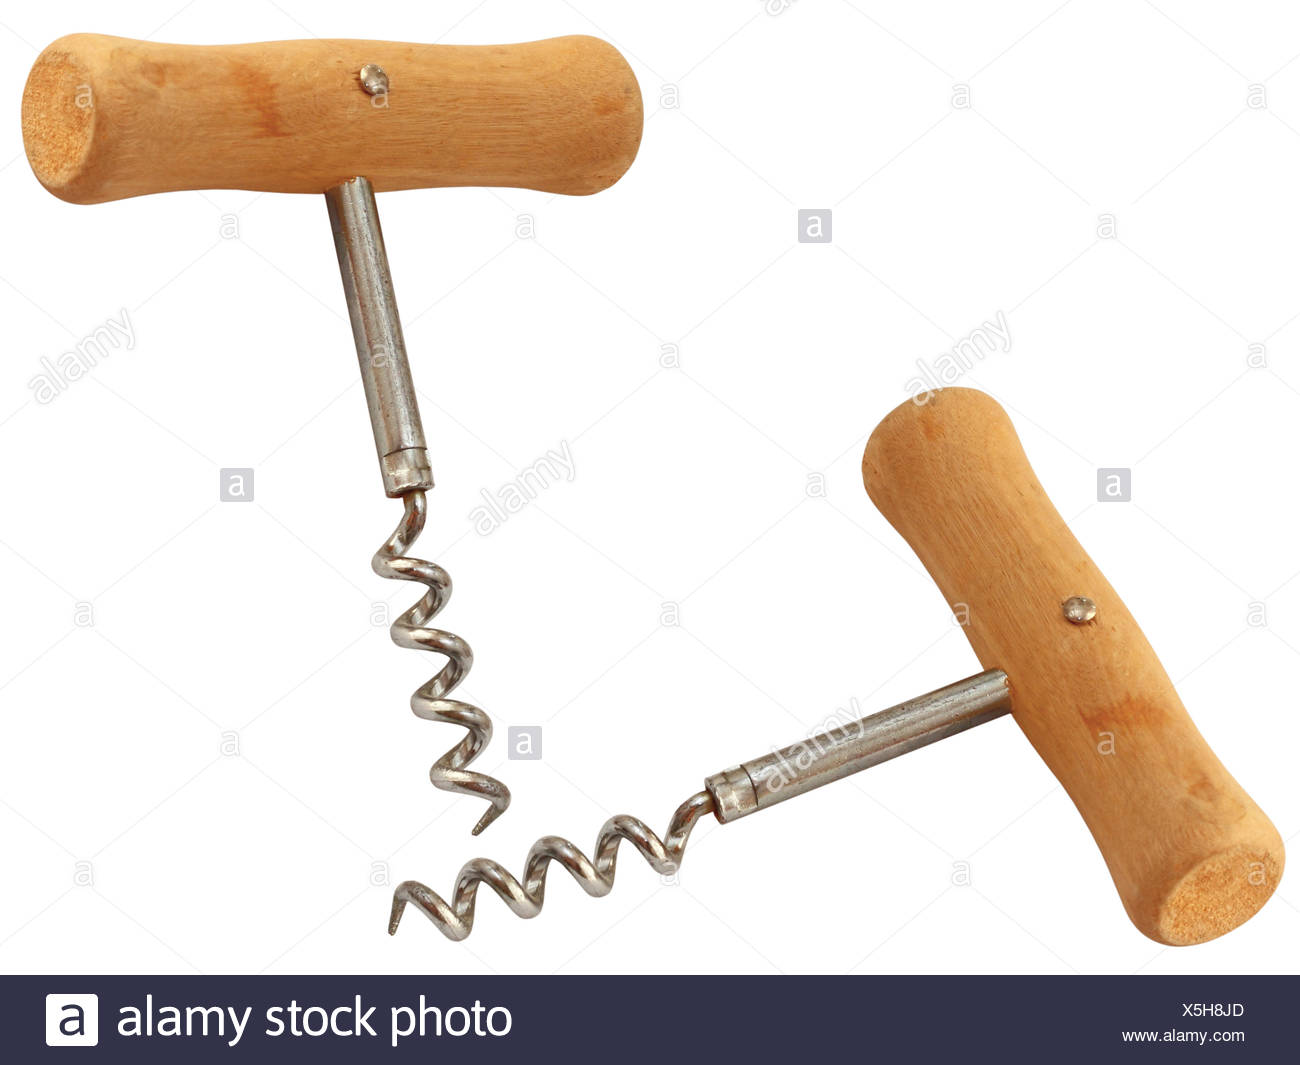 corkscrew with wooden handle Stock Photo